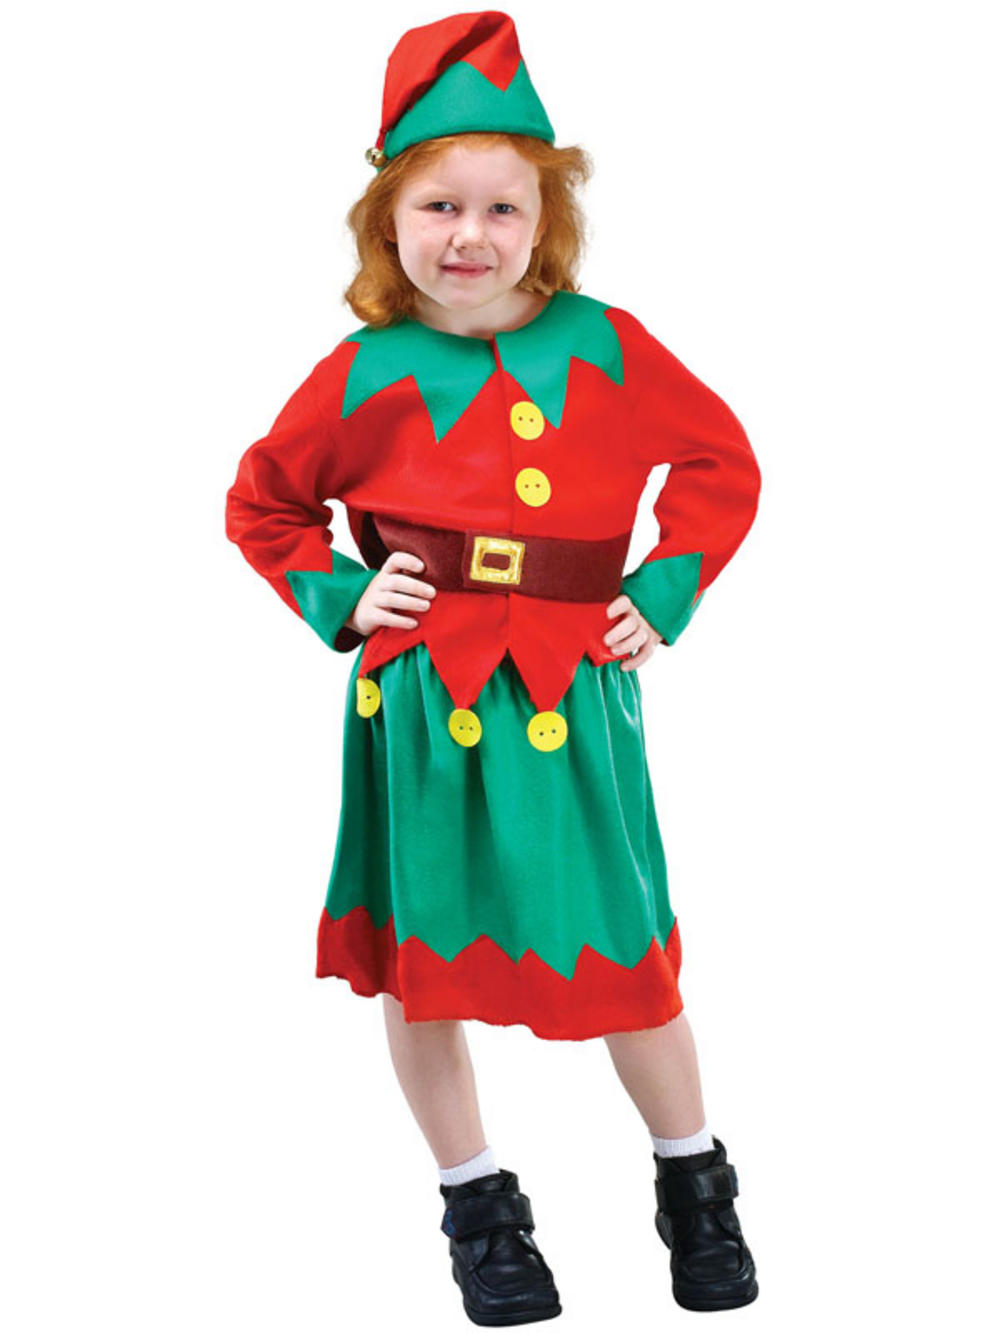 Elf Costumes. Be Santa's favorite little helper in the workshop this holiday season. We have adult Elf costumes, sexy Elf costumes, child Elf Costumes, baby Elf Costumes and more.